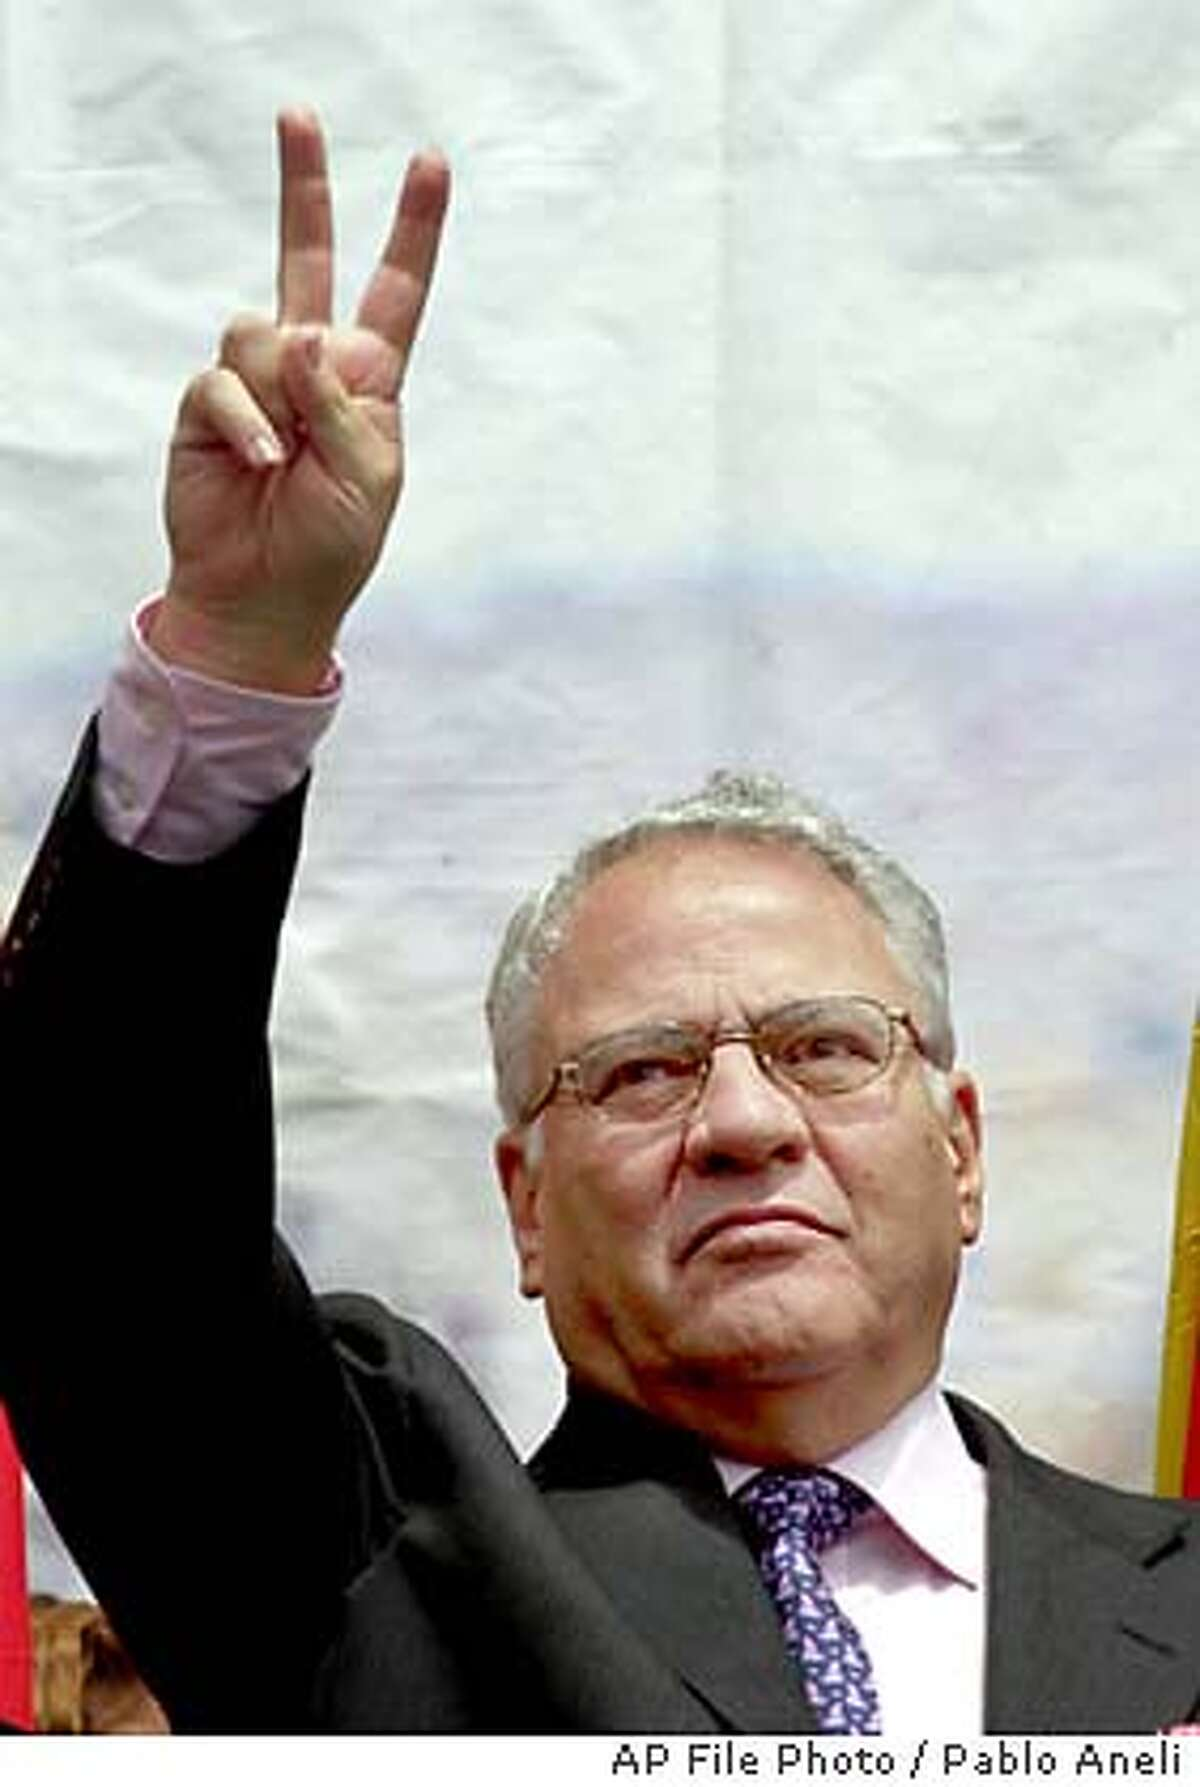 ** FILE ** Bolivian President Gonzalo Sanchez de Lozada, a businessman nicknamed ``Goni'', greets supporters in this April 9, 2002 file photo. The U.S.-educated millionaire who took office for a second term in August 2002 will resign Friday Oct. 17, 2003 after weeks of deadly street riots triggered by a goverment plan to export natural gas, a presidential aide said Friday. (AP Photo/Pablo Aneli, File)